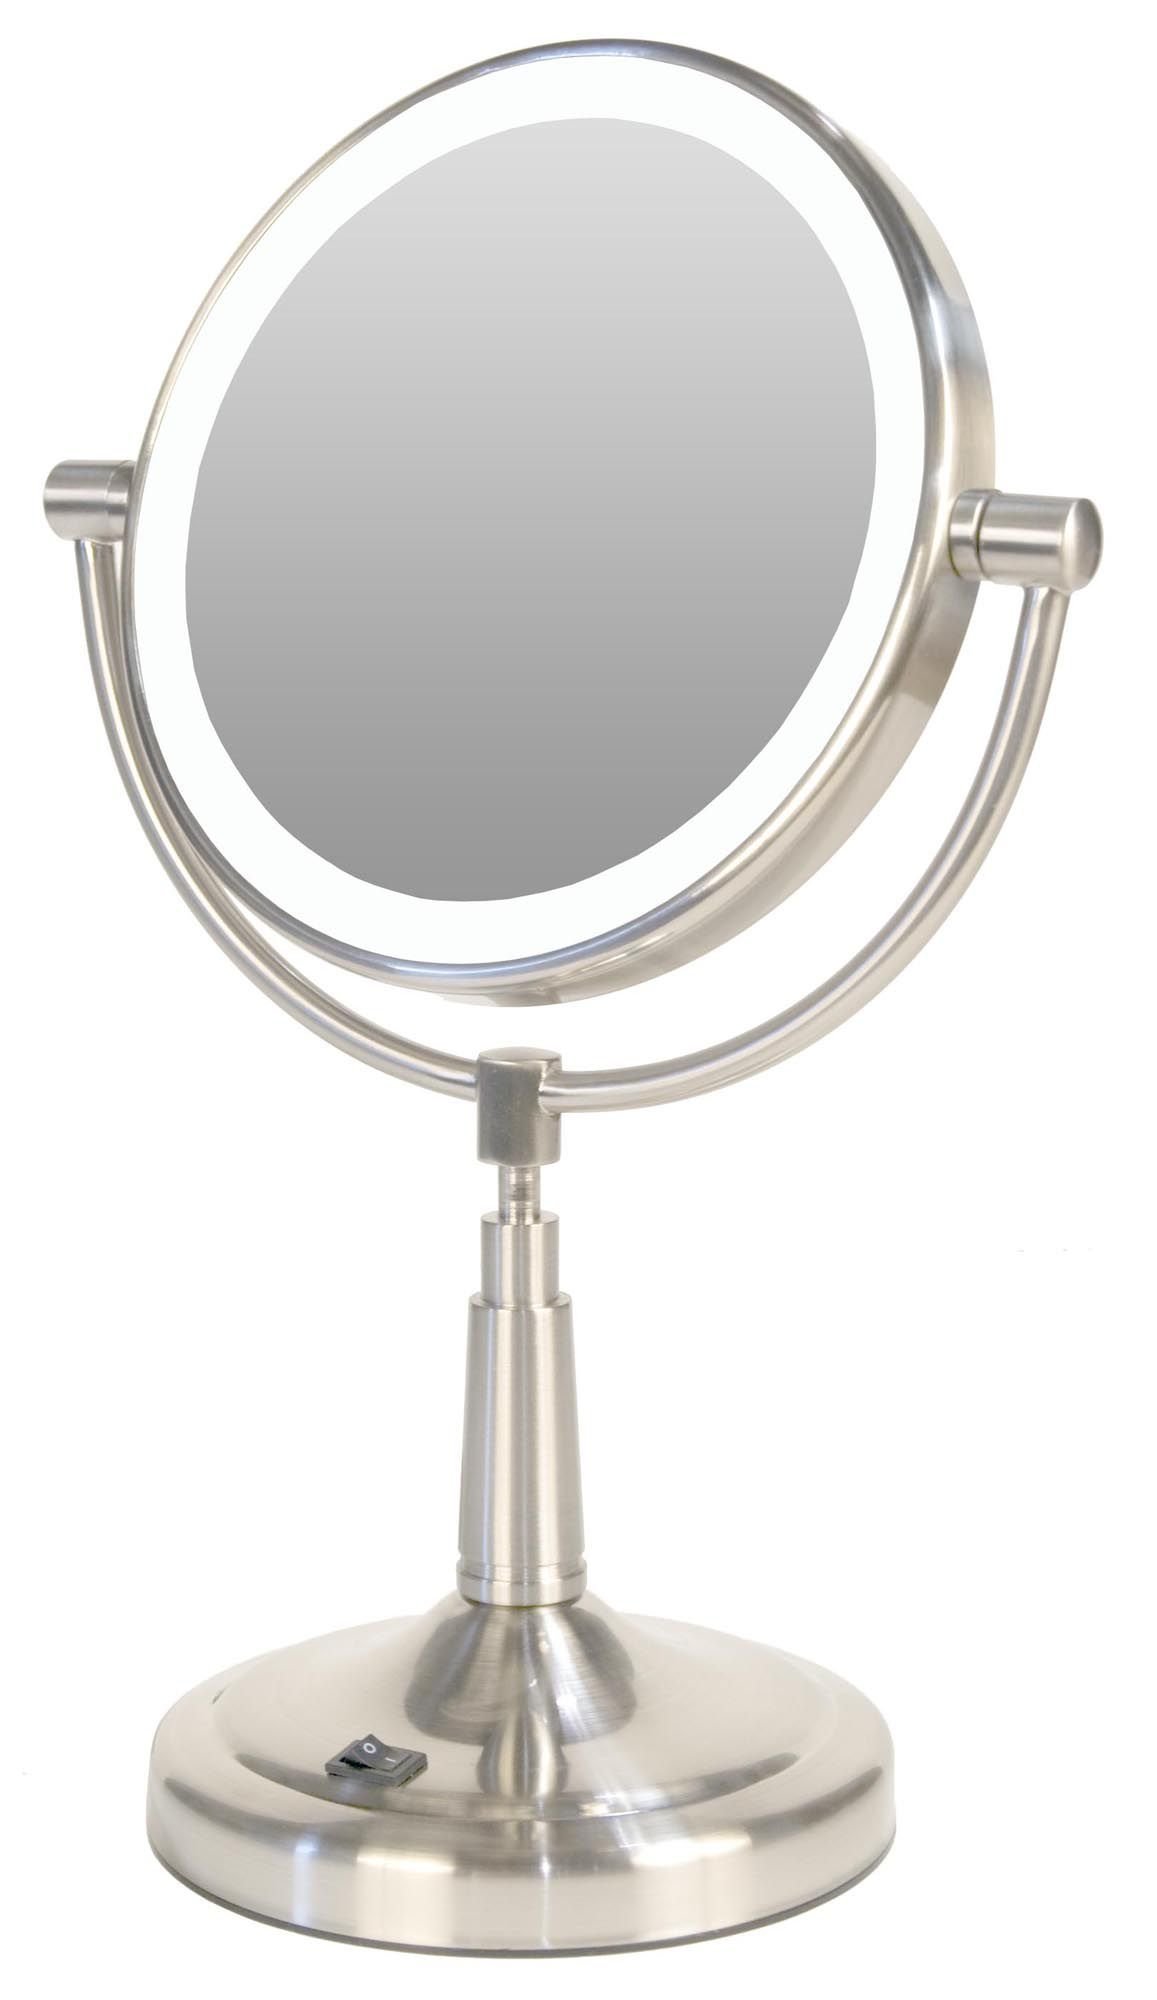 LED LIGHTED VANITY MIRROR                                                                                                        at mygofer.com